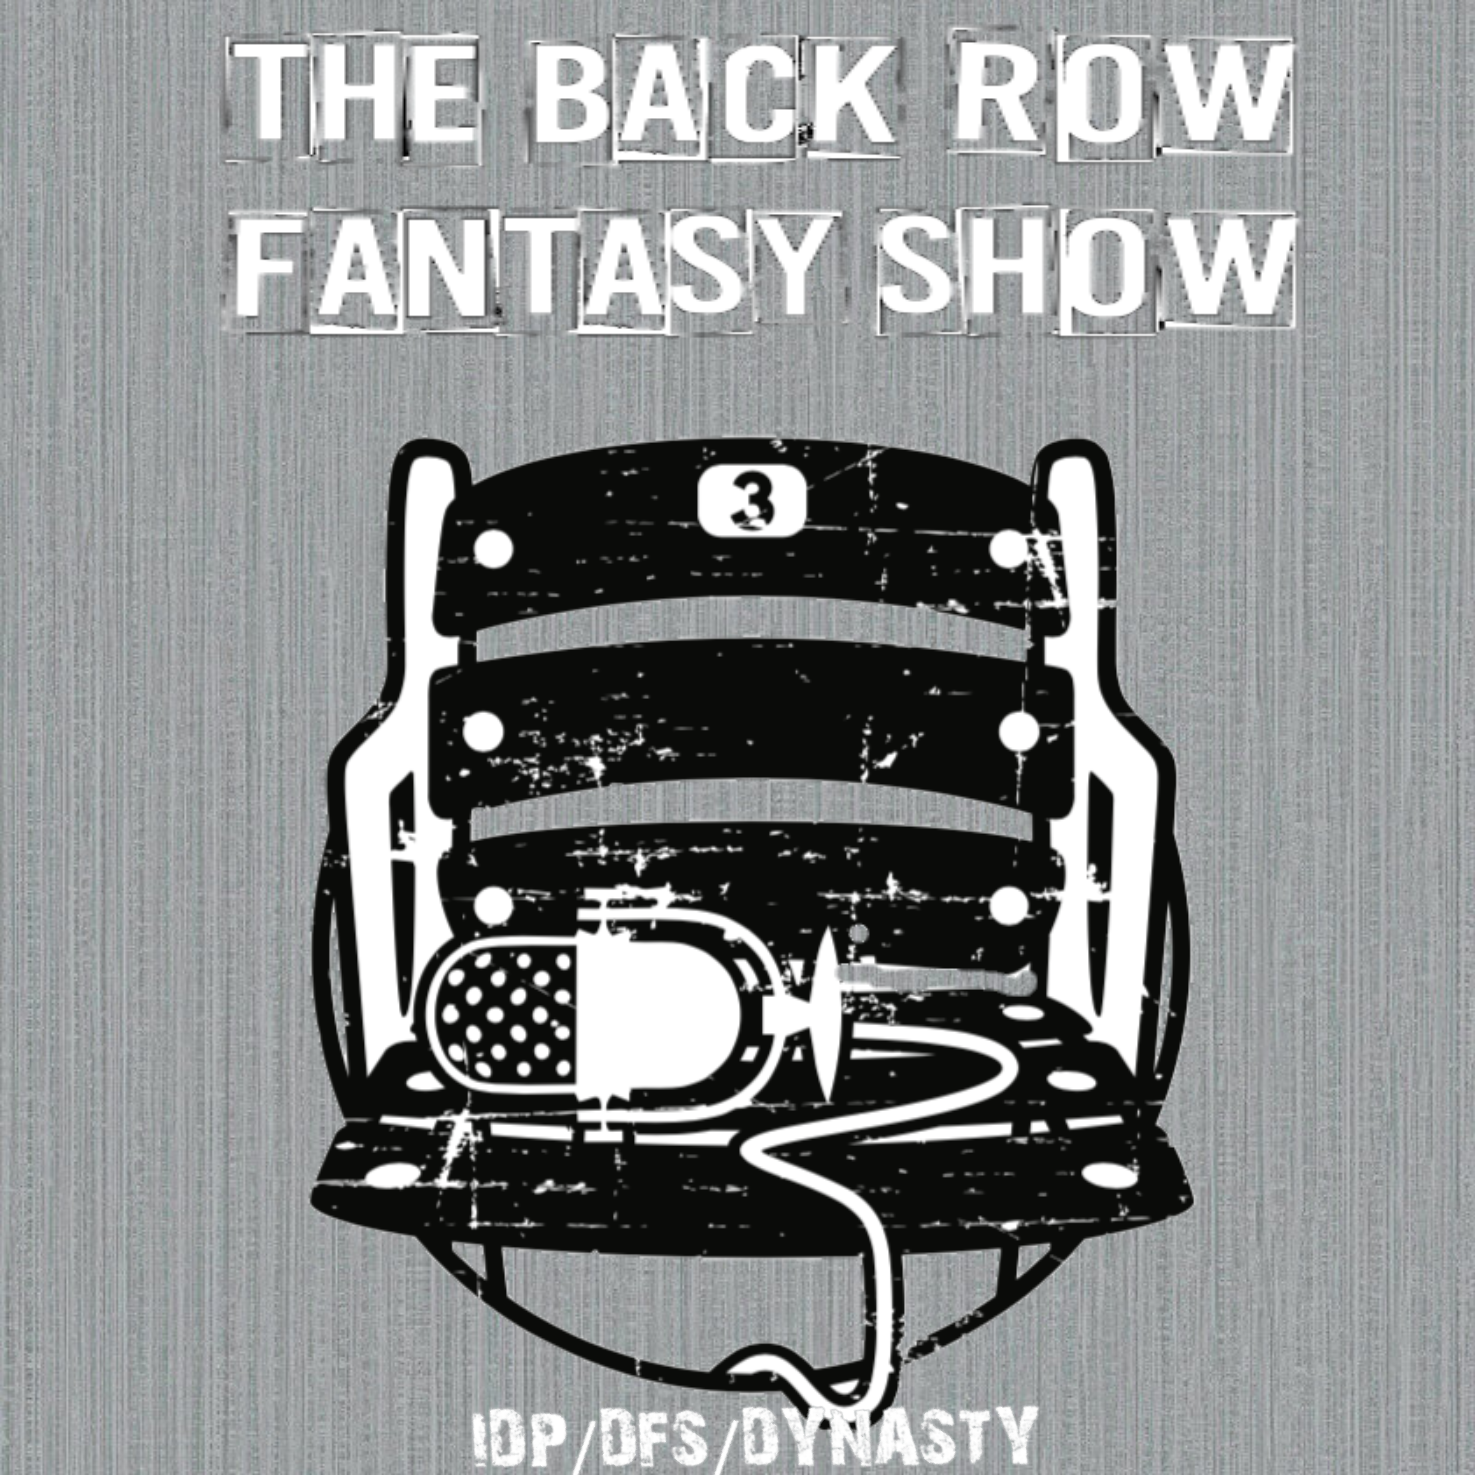 The Back Row Fantasy Show